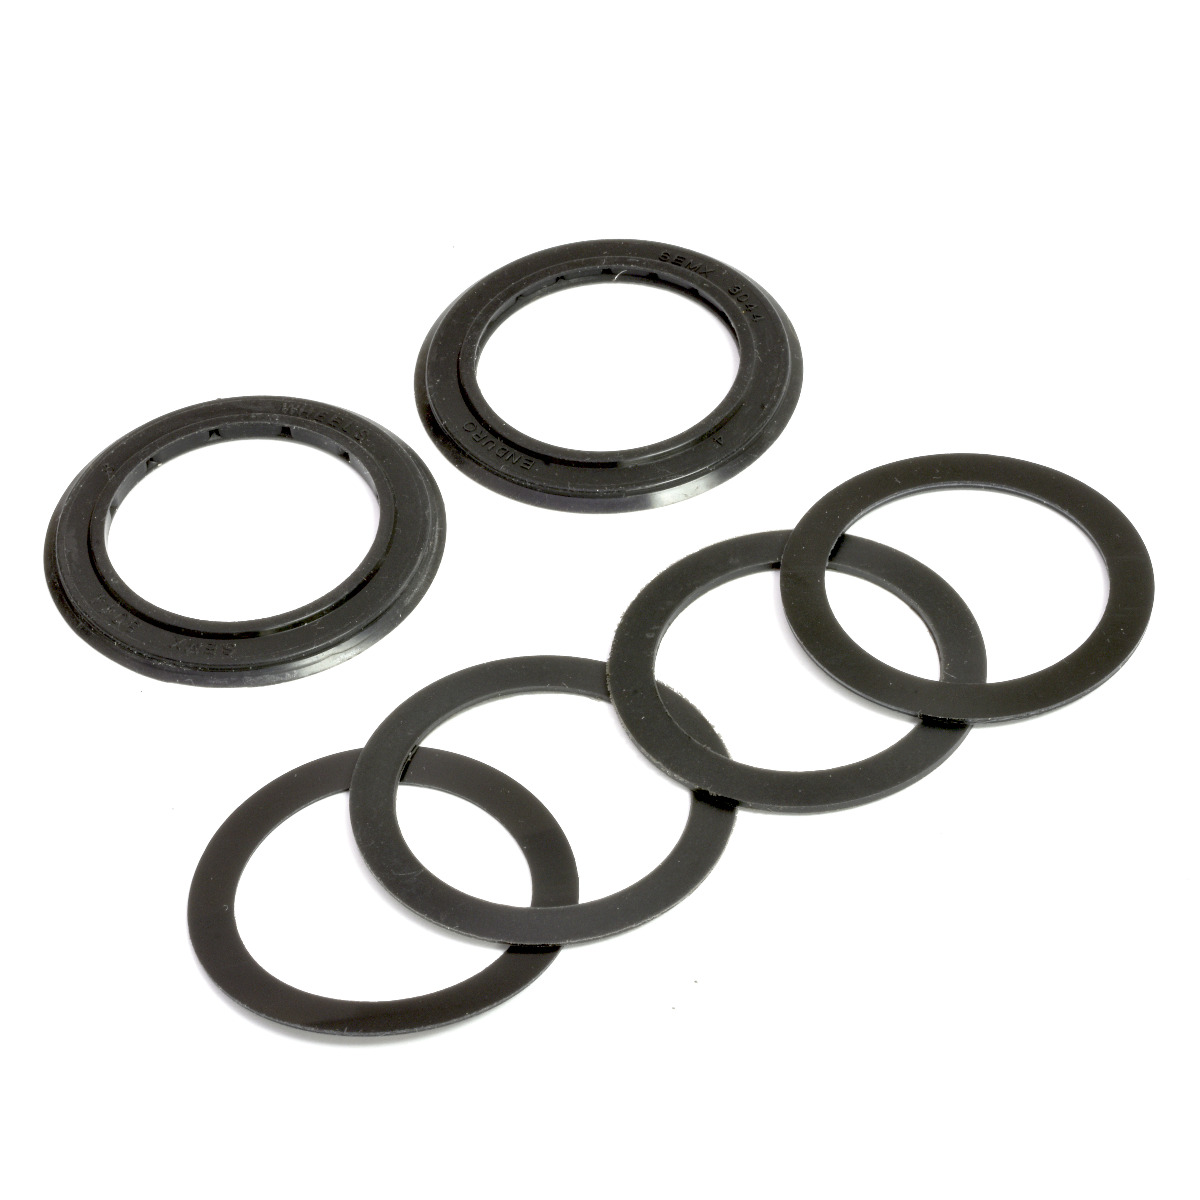 Wheels Manufacturing Inc. Repair Pack for 30mm Spindle Bottom Brackets Color: Black